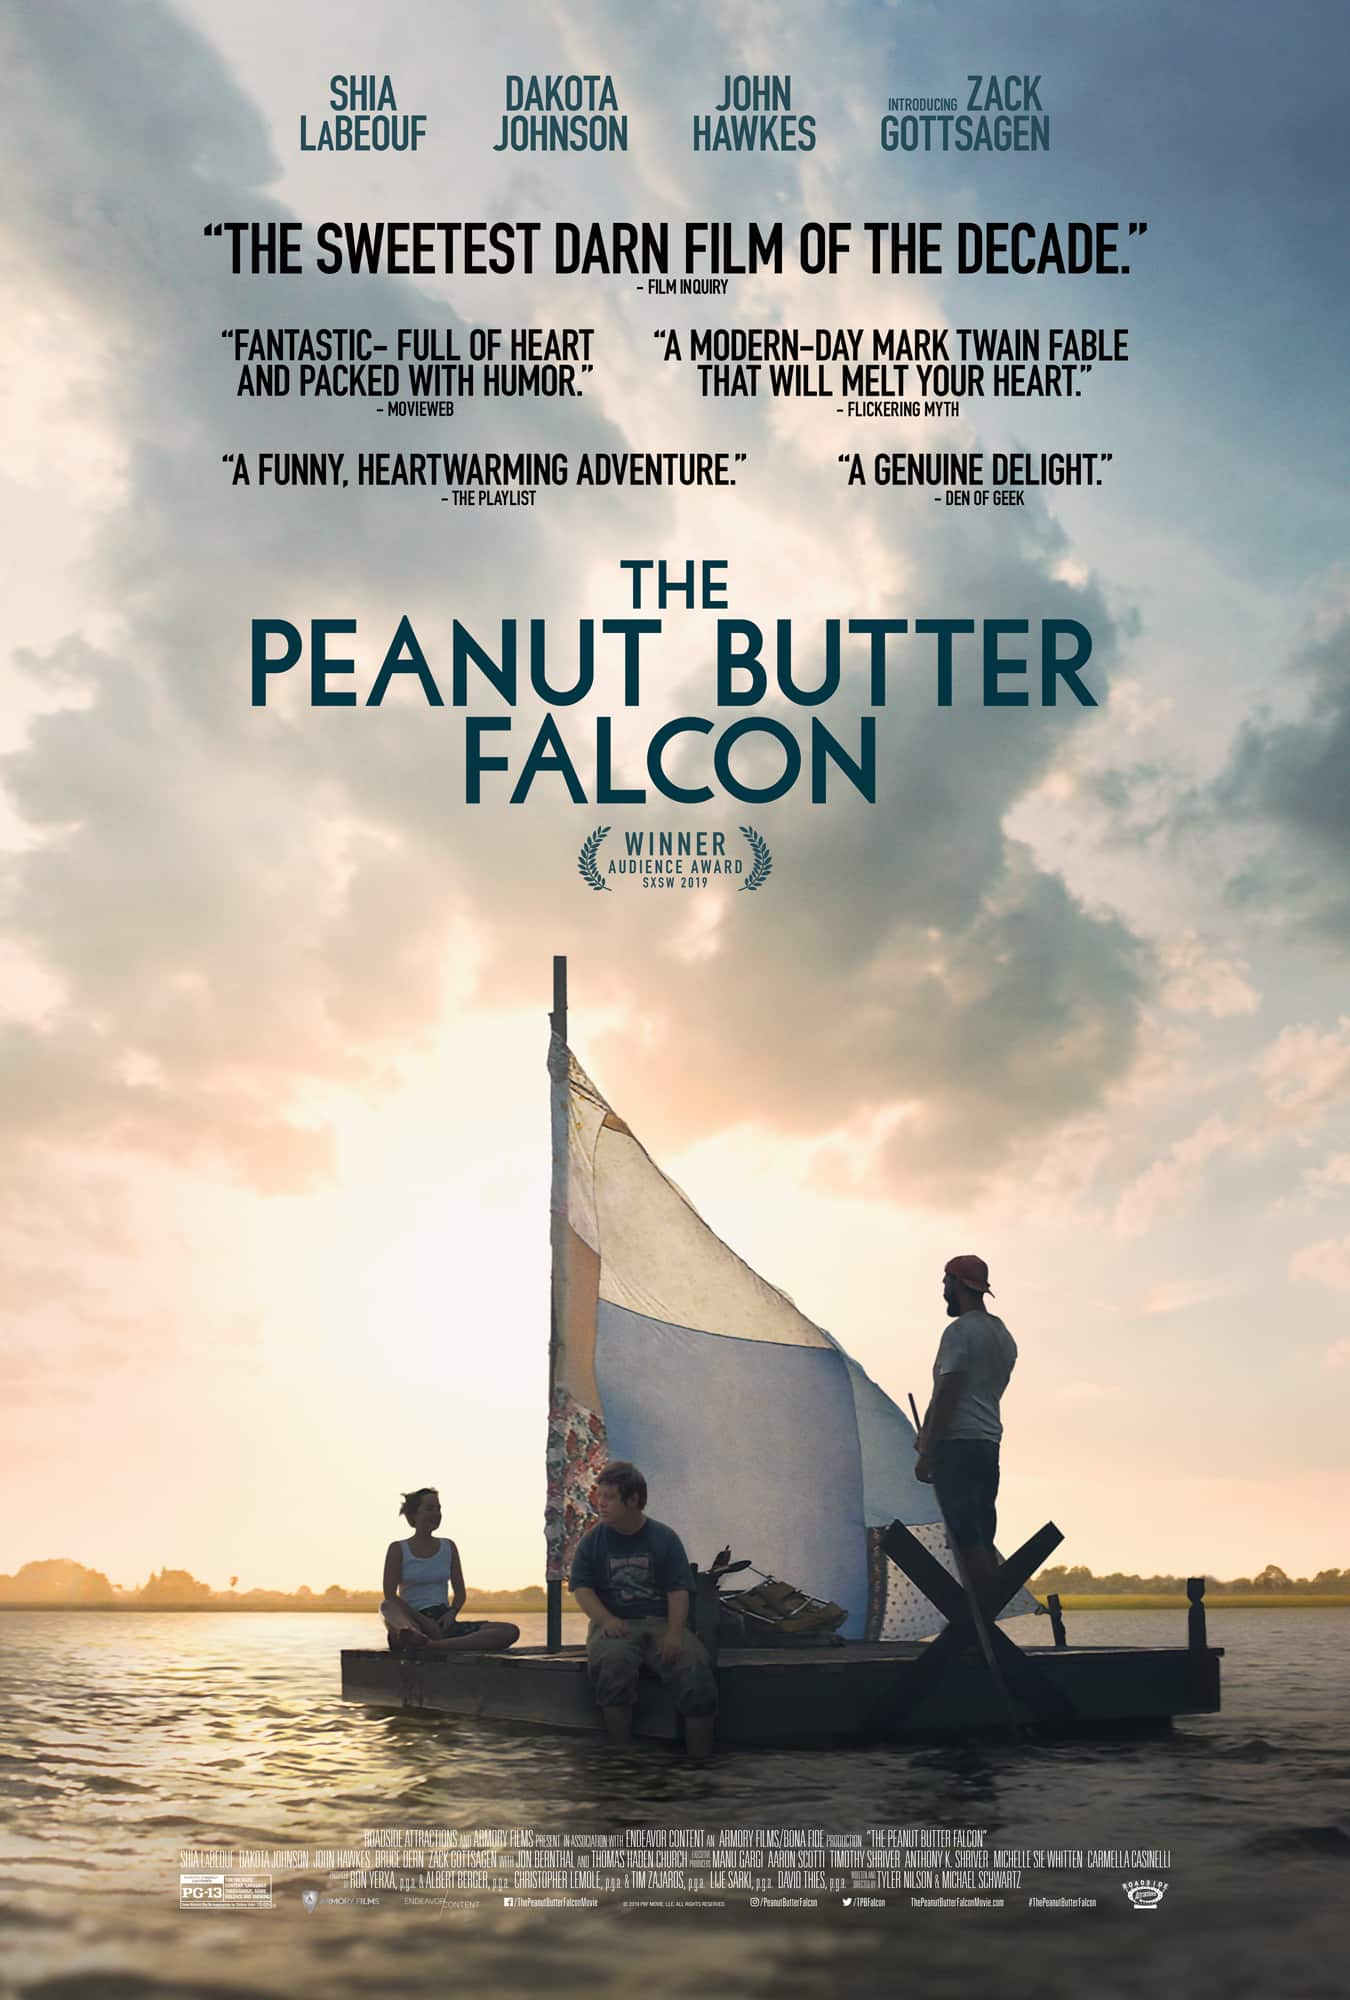 AMC Stub Members: check your text to link for Free Movie Screening Aug 14- of The Peanut Butter Falcon